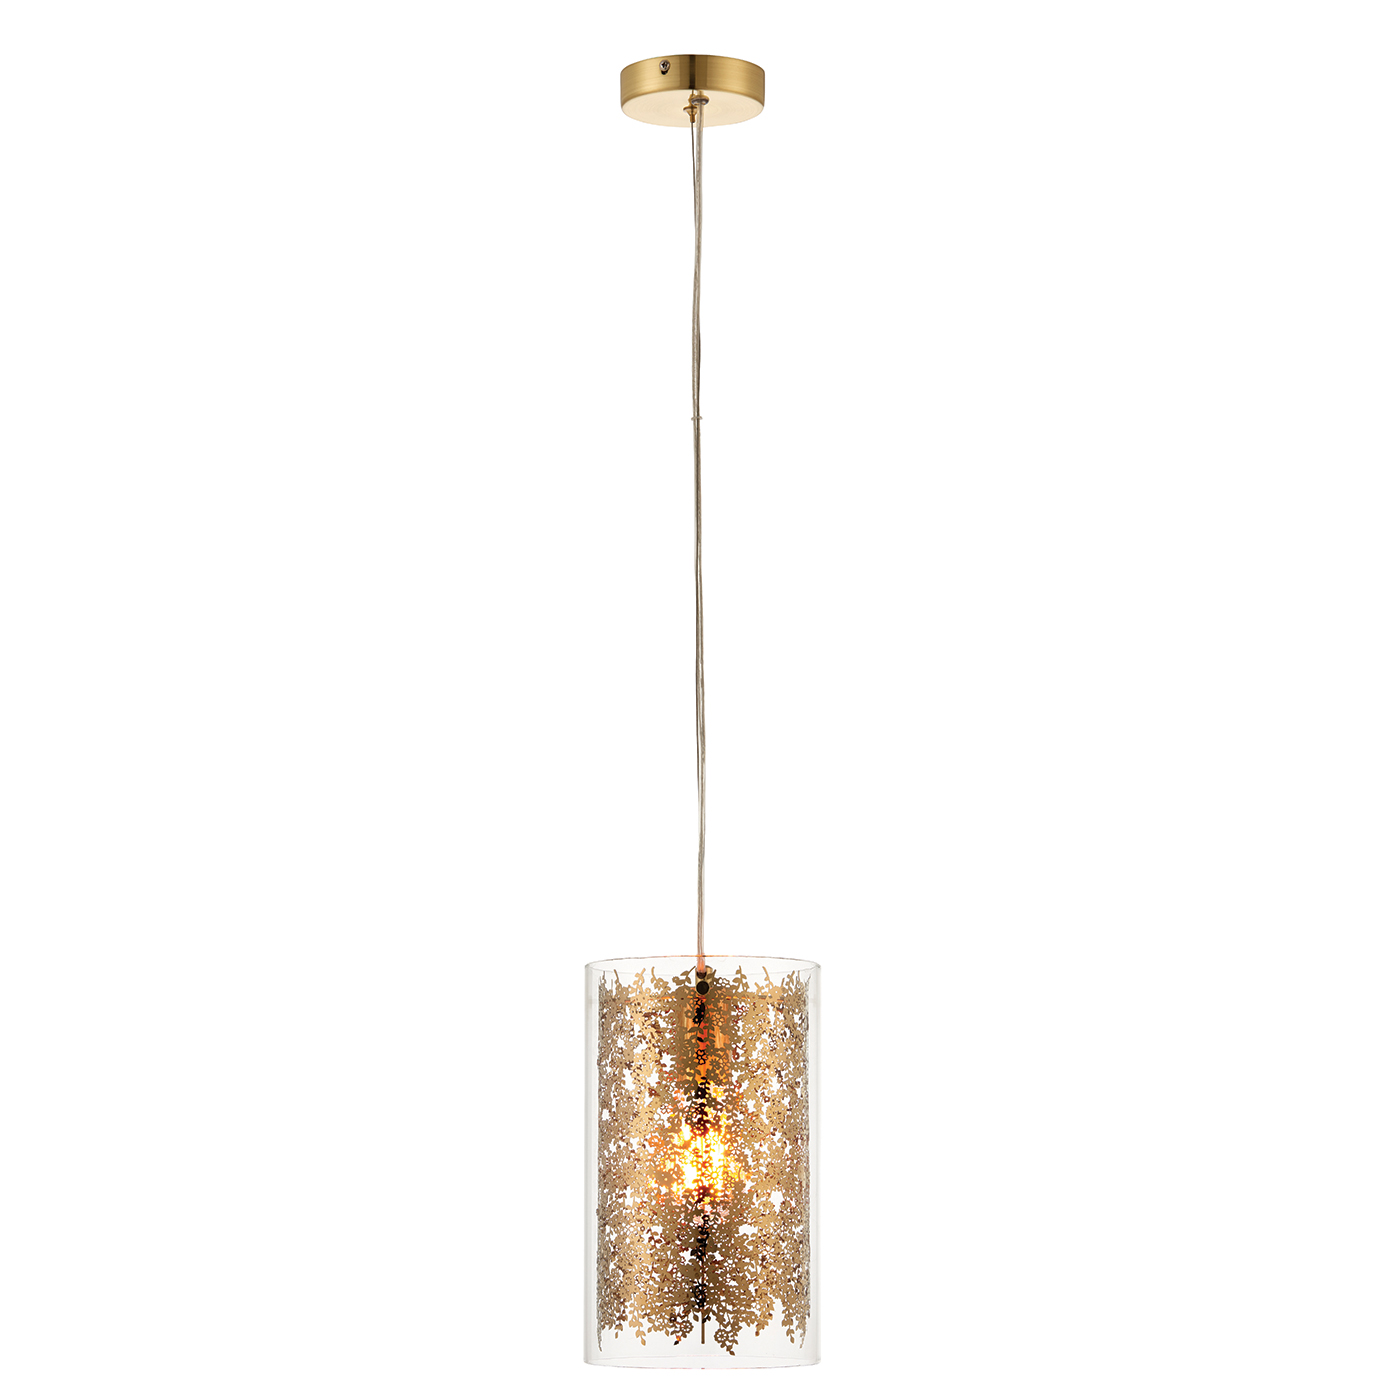 Endon Lacy pendant 1x 40W Clear glass & brass effect plate